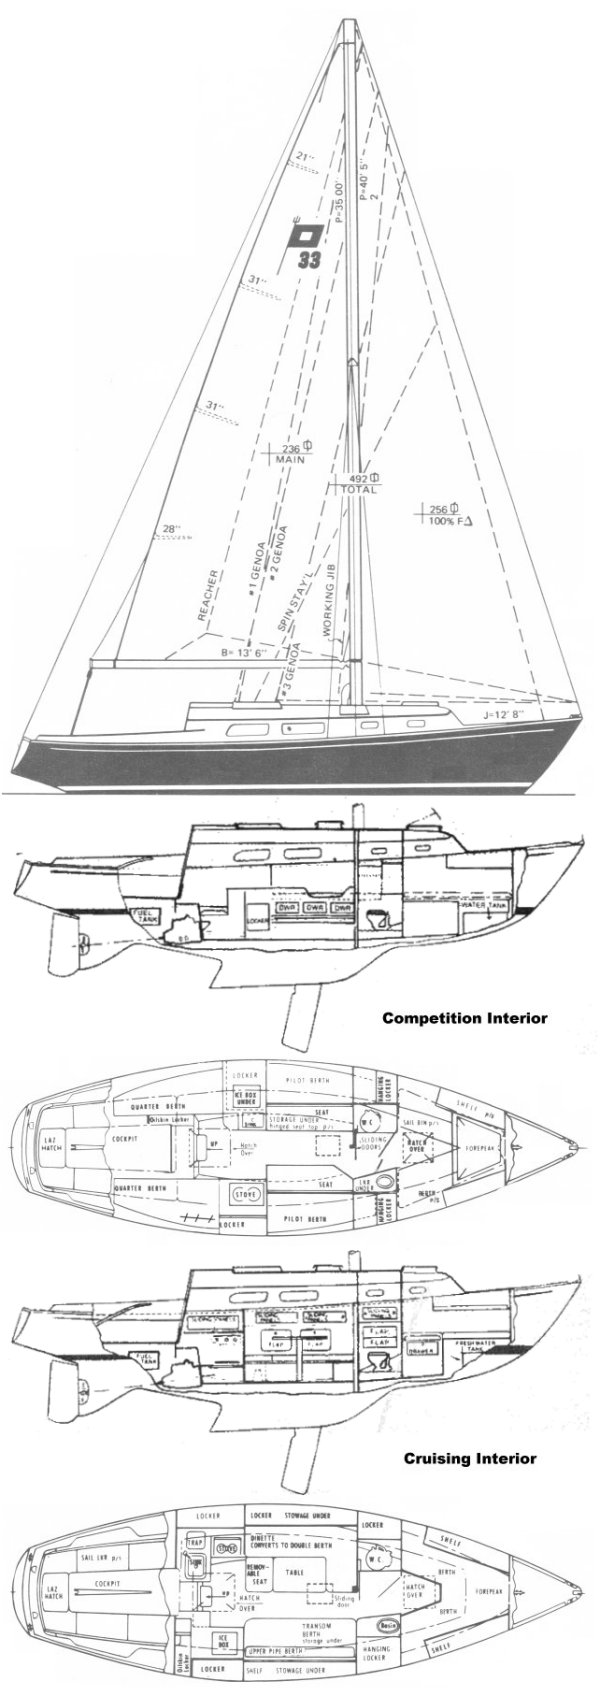 PEARSON 33 drawing